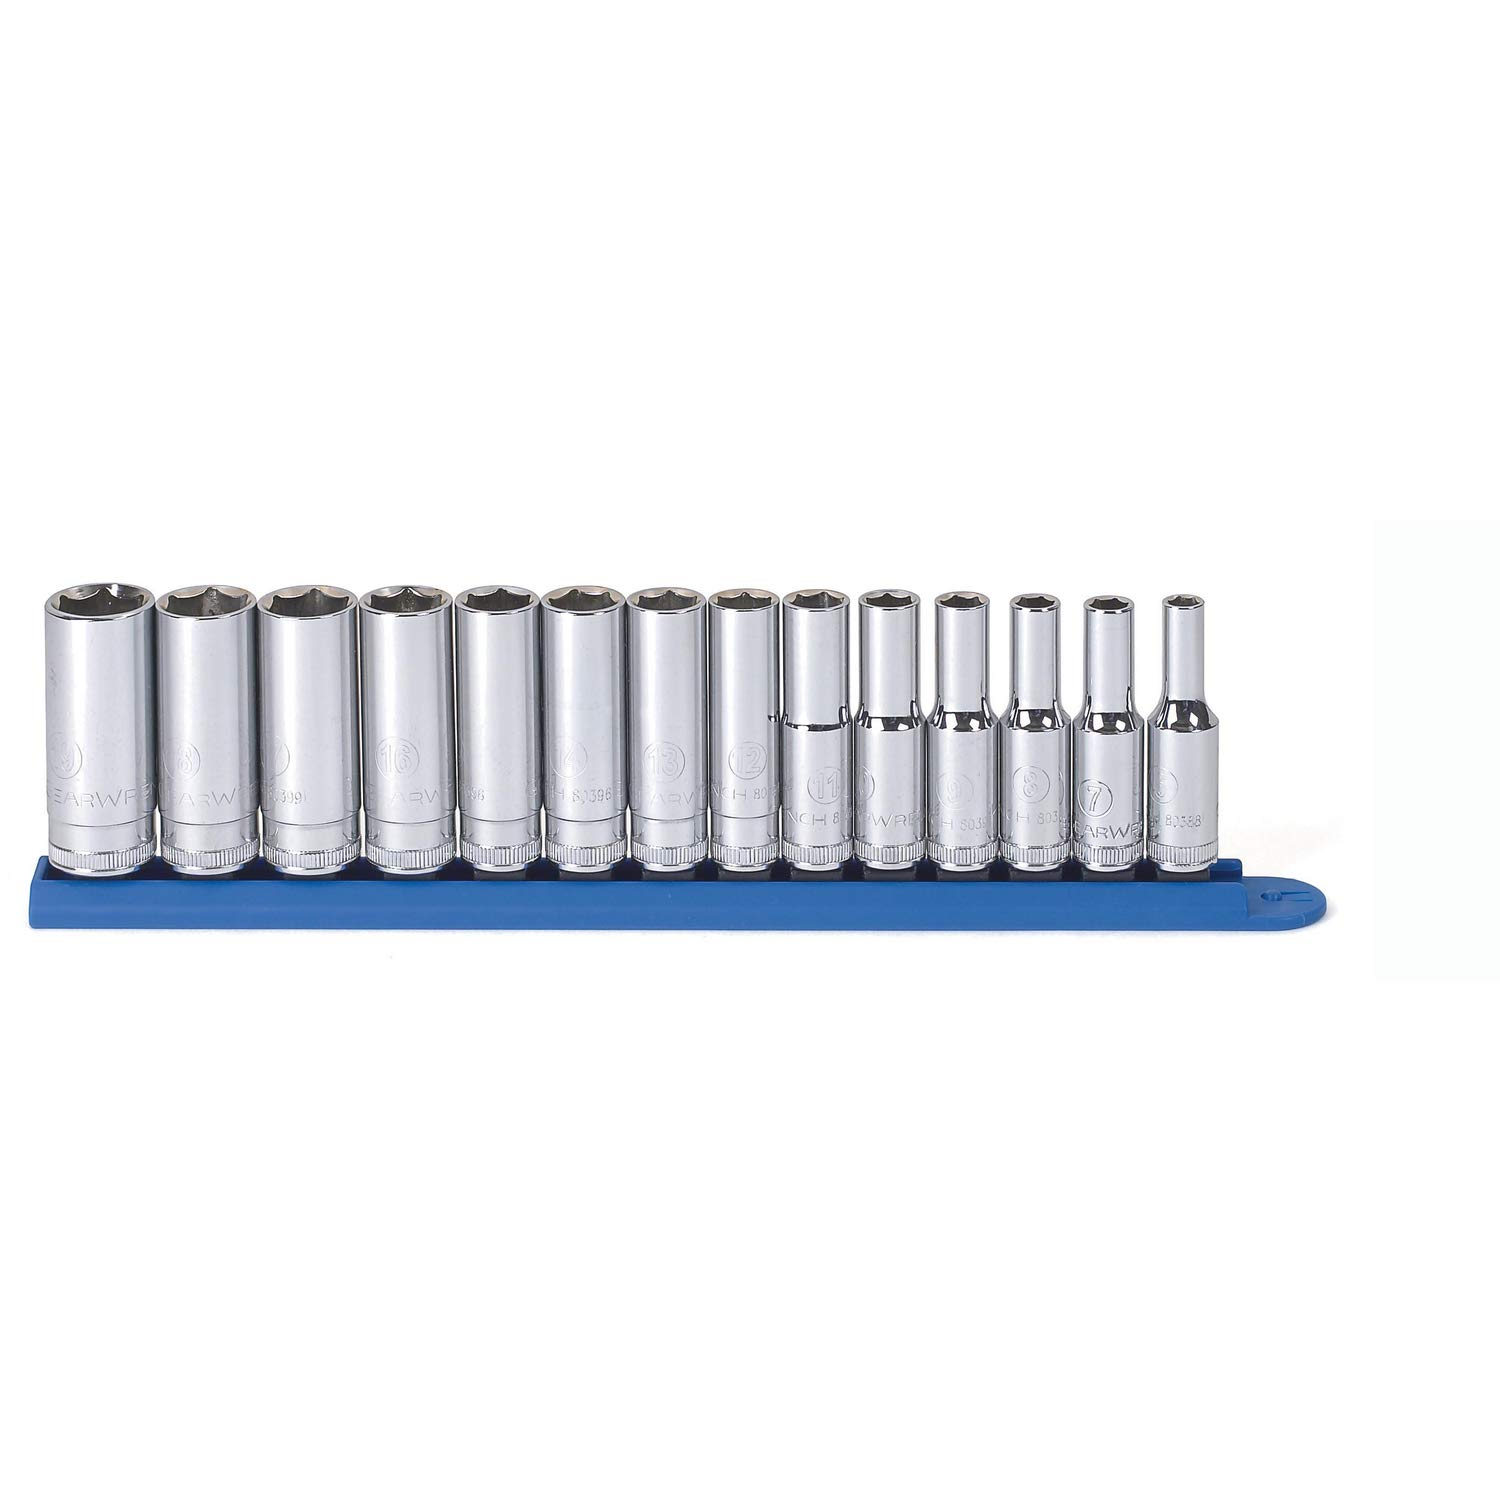 "GEARWRENCH 14 Piece 3/8"" Drive 6 Pt. Deep Socket Set, Metric - 80554"